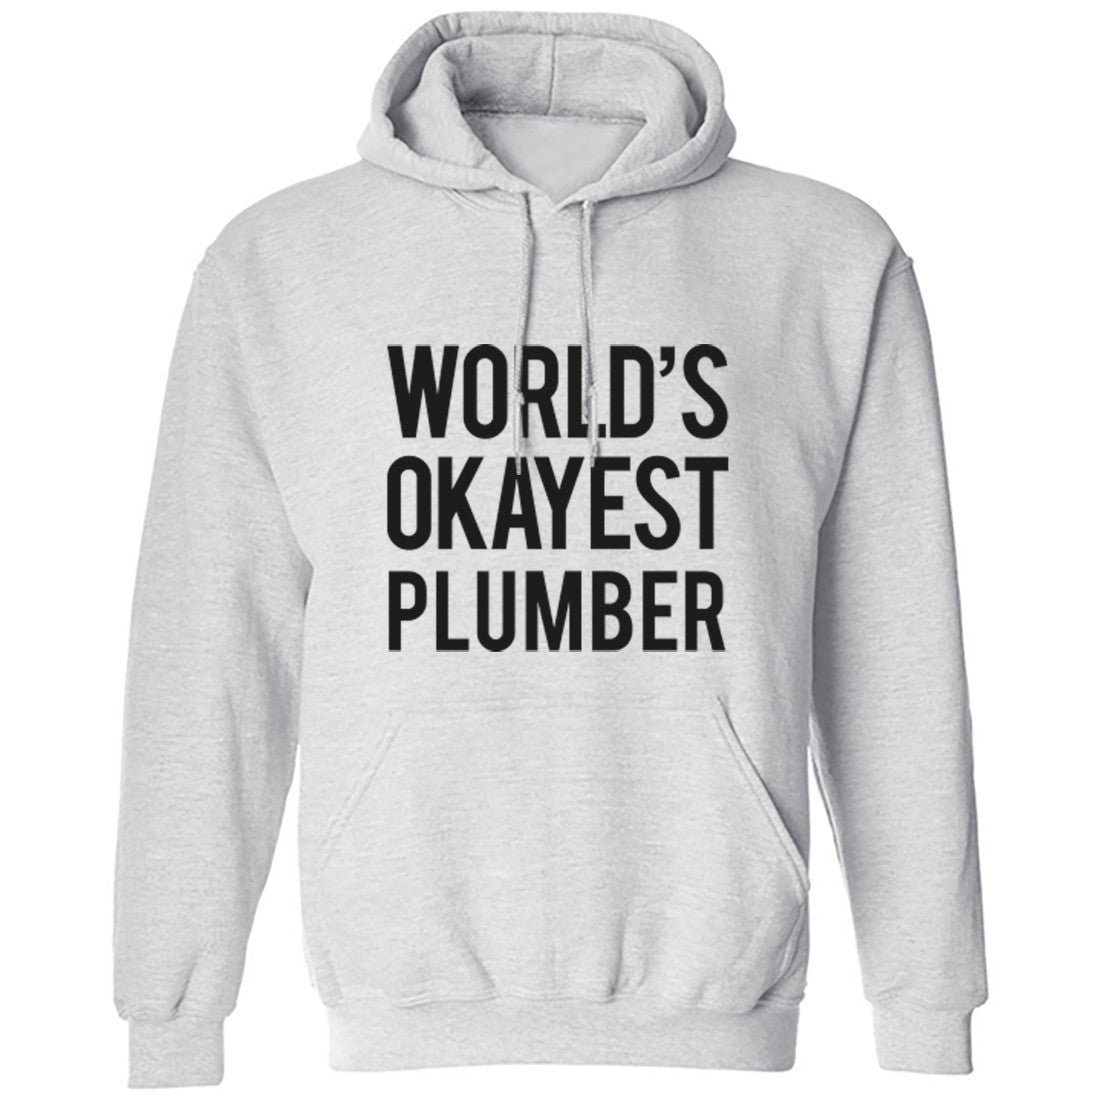 Worlds Okayest Plumber Unisex Hoodie K0508 - Illustrated Identity Ltd.